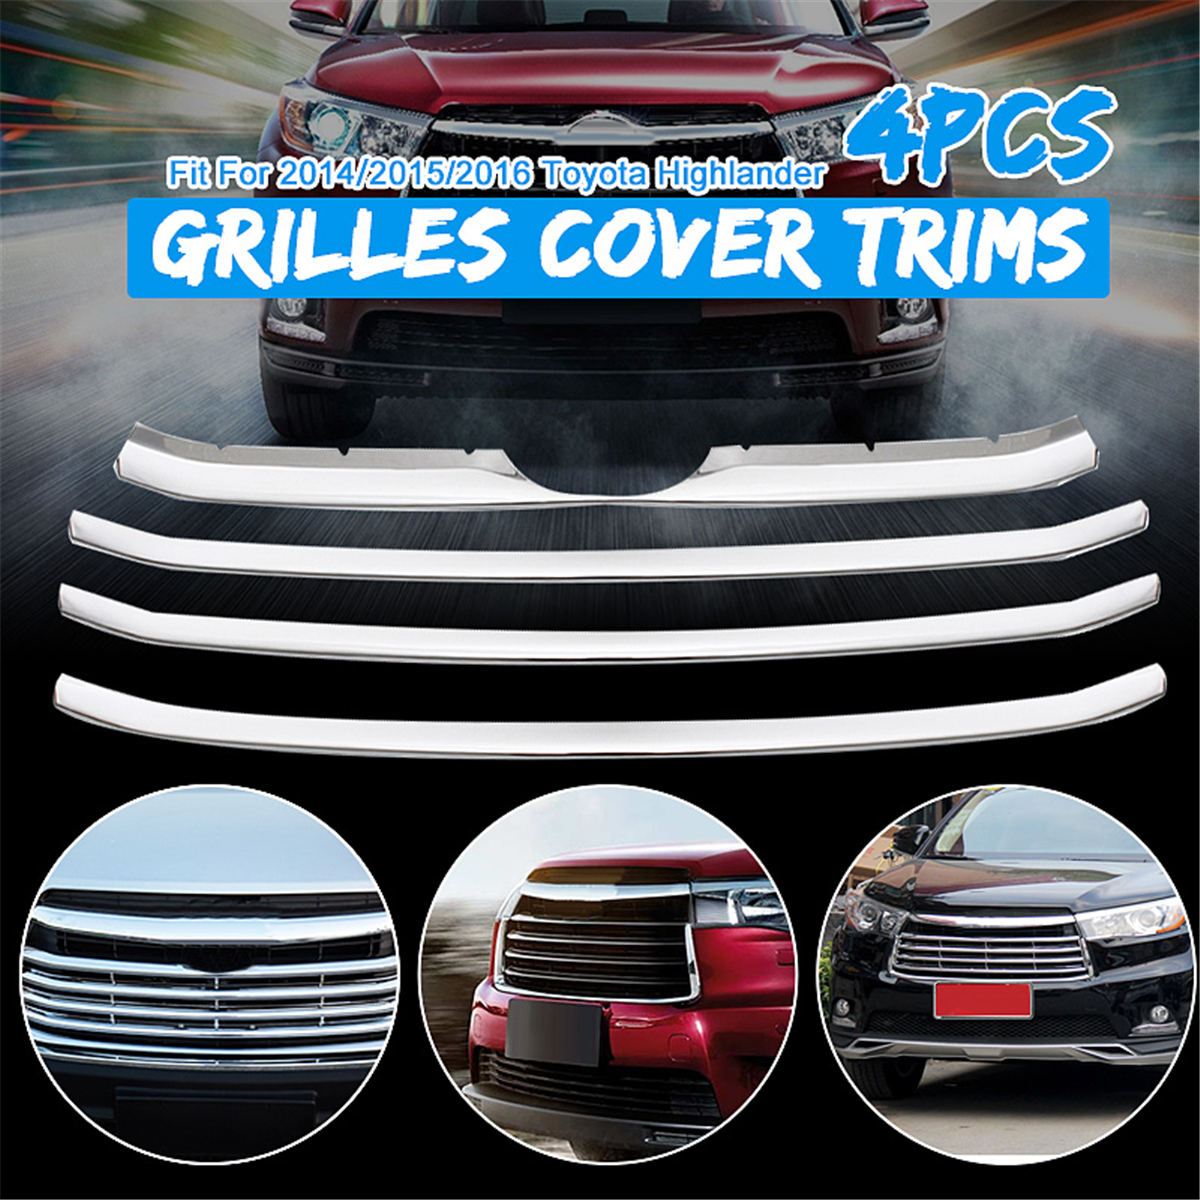 Chrome Stainless steel Grill Grilles cover trims for Toyota 2014 2015 2016 HighlanderChrome Stainless steel Grill Grilles cover trims for Toyota 2014 2015 2016 Highlander